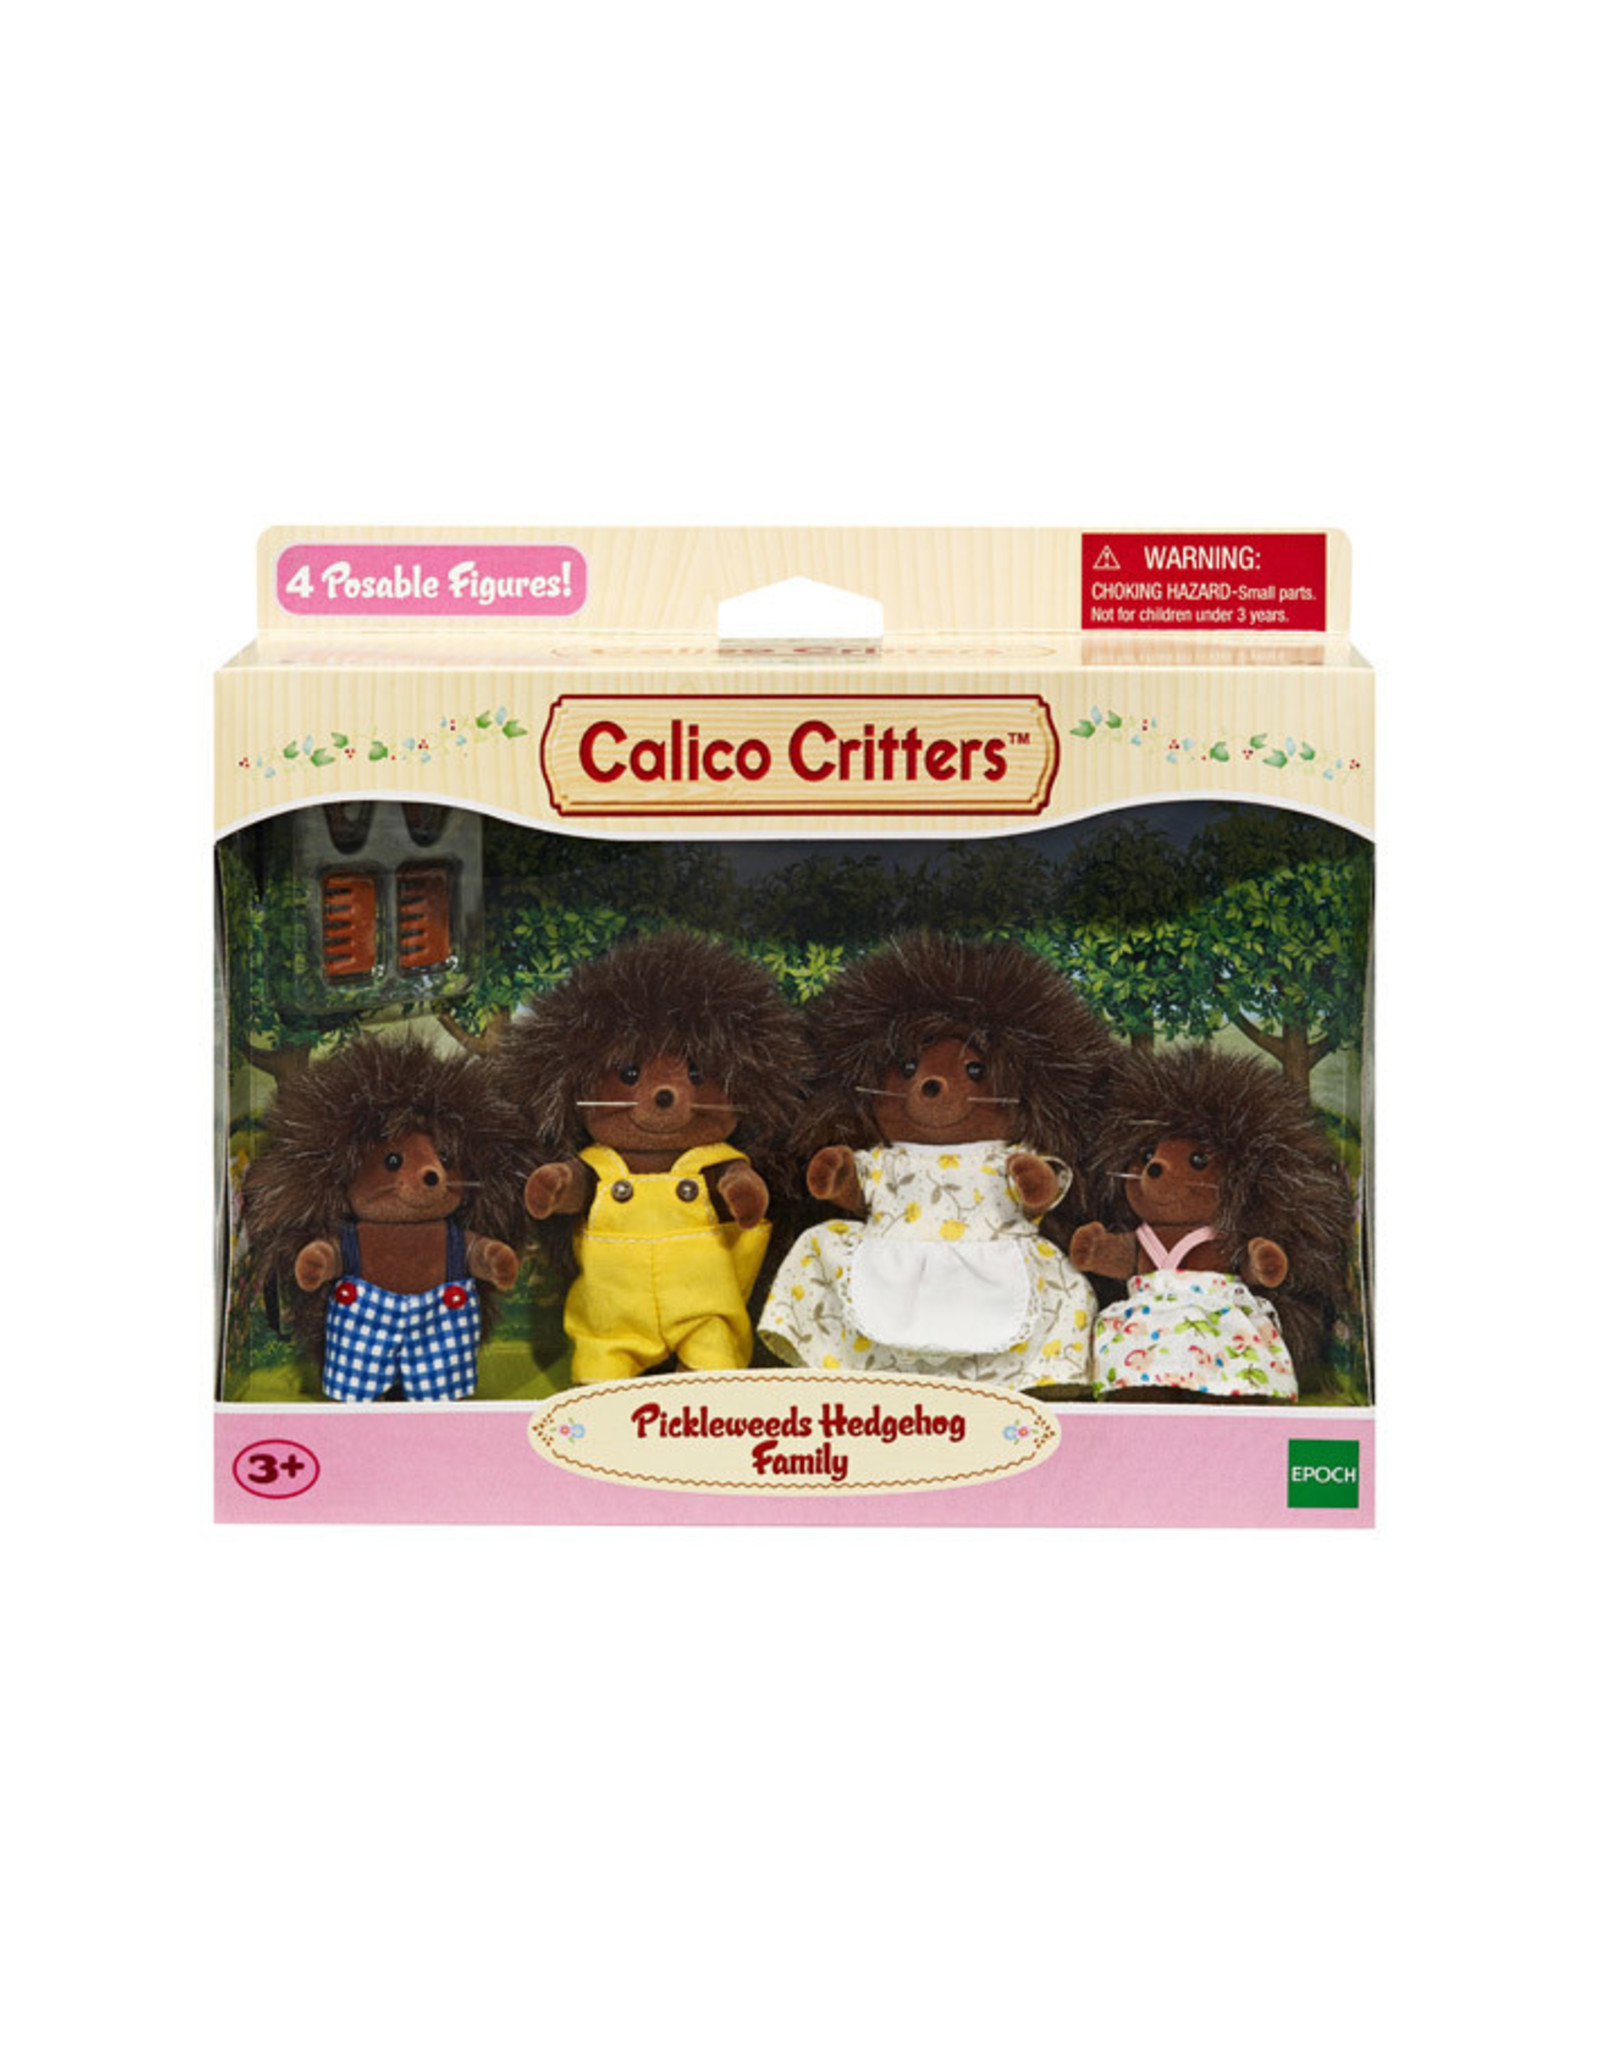 Calico Critters BL Pickleweed Hedgehog Family Calico Critters